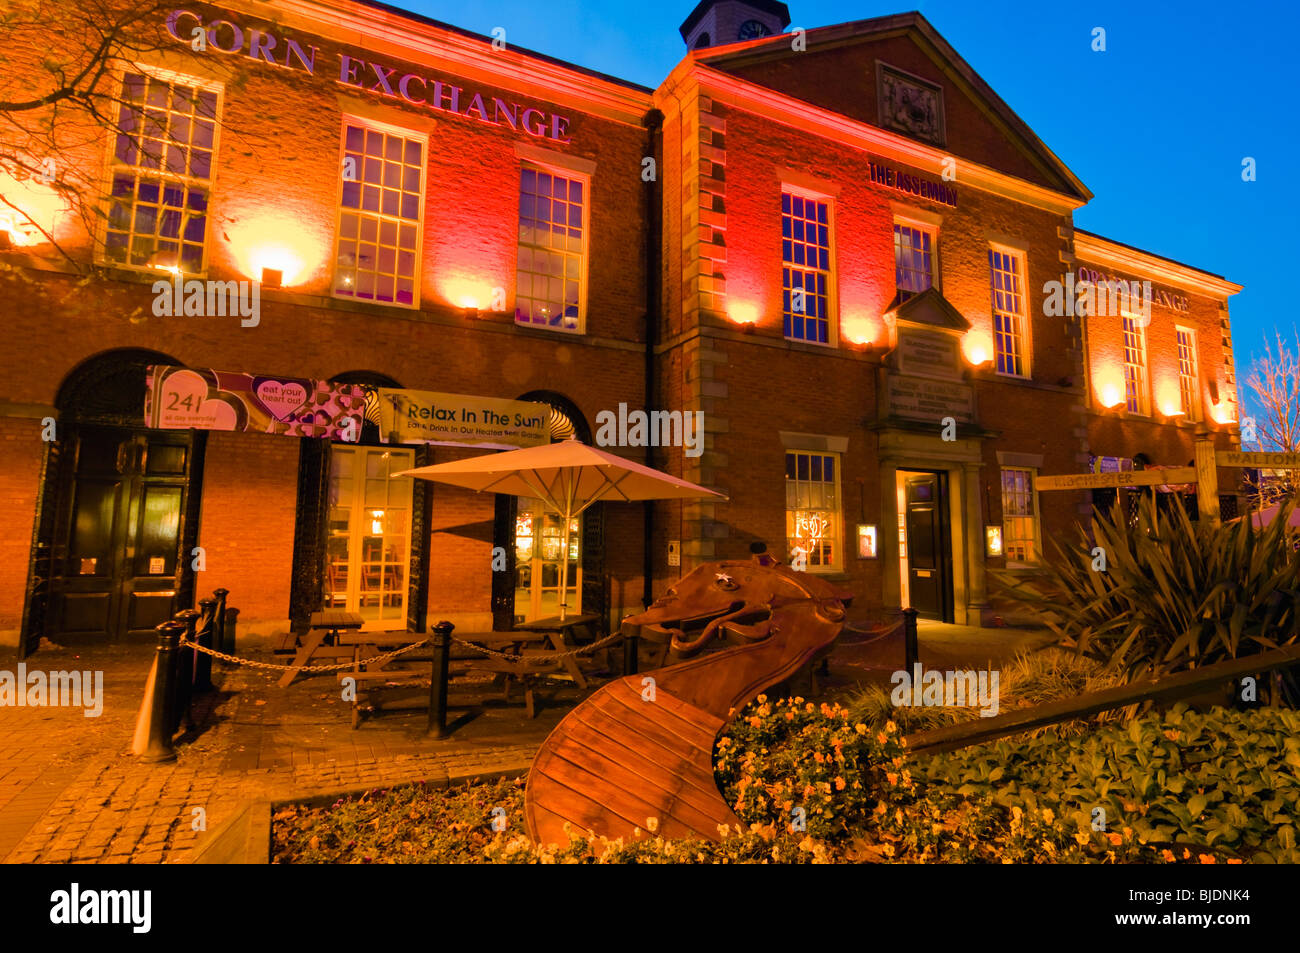 The former Corn Exchange, now the Flax and Firkin pub, in Preston, Lancashire, England - Stock Image